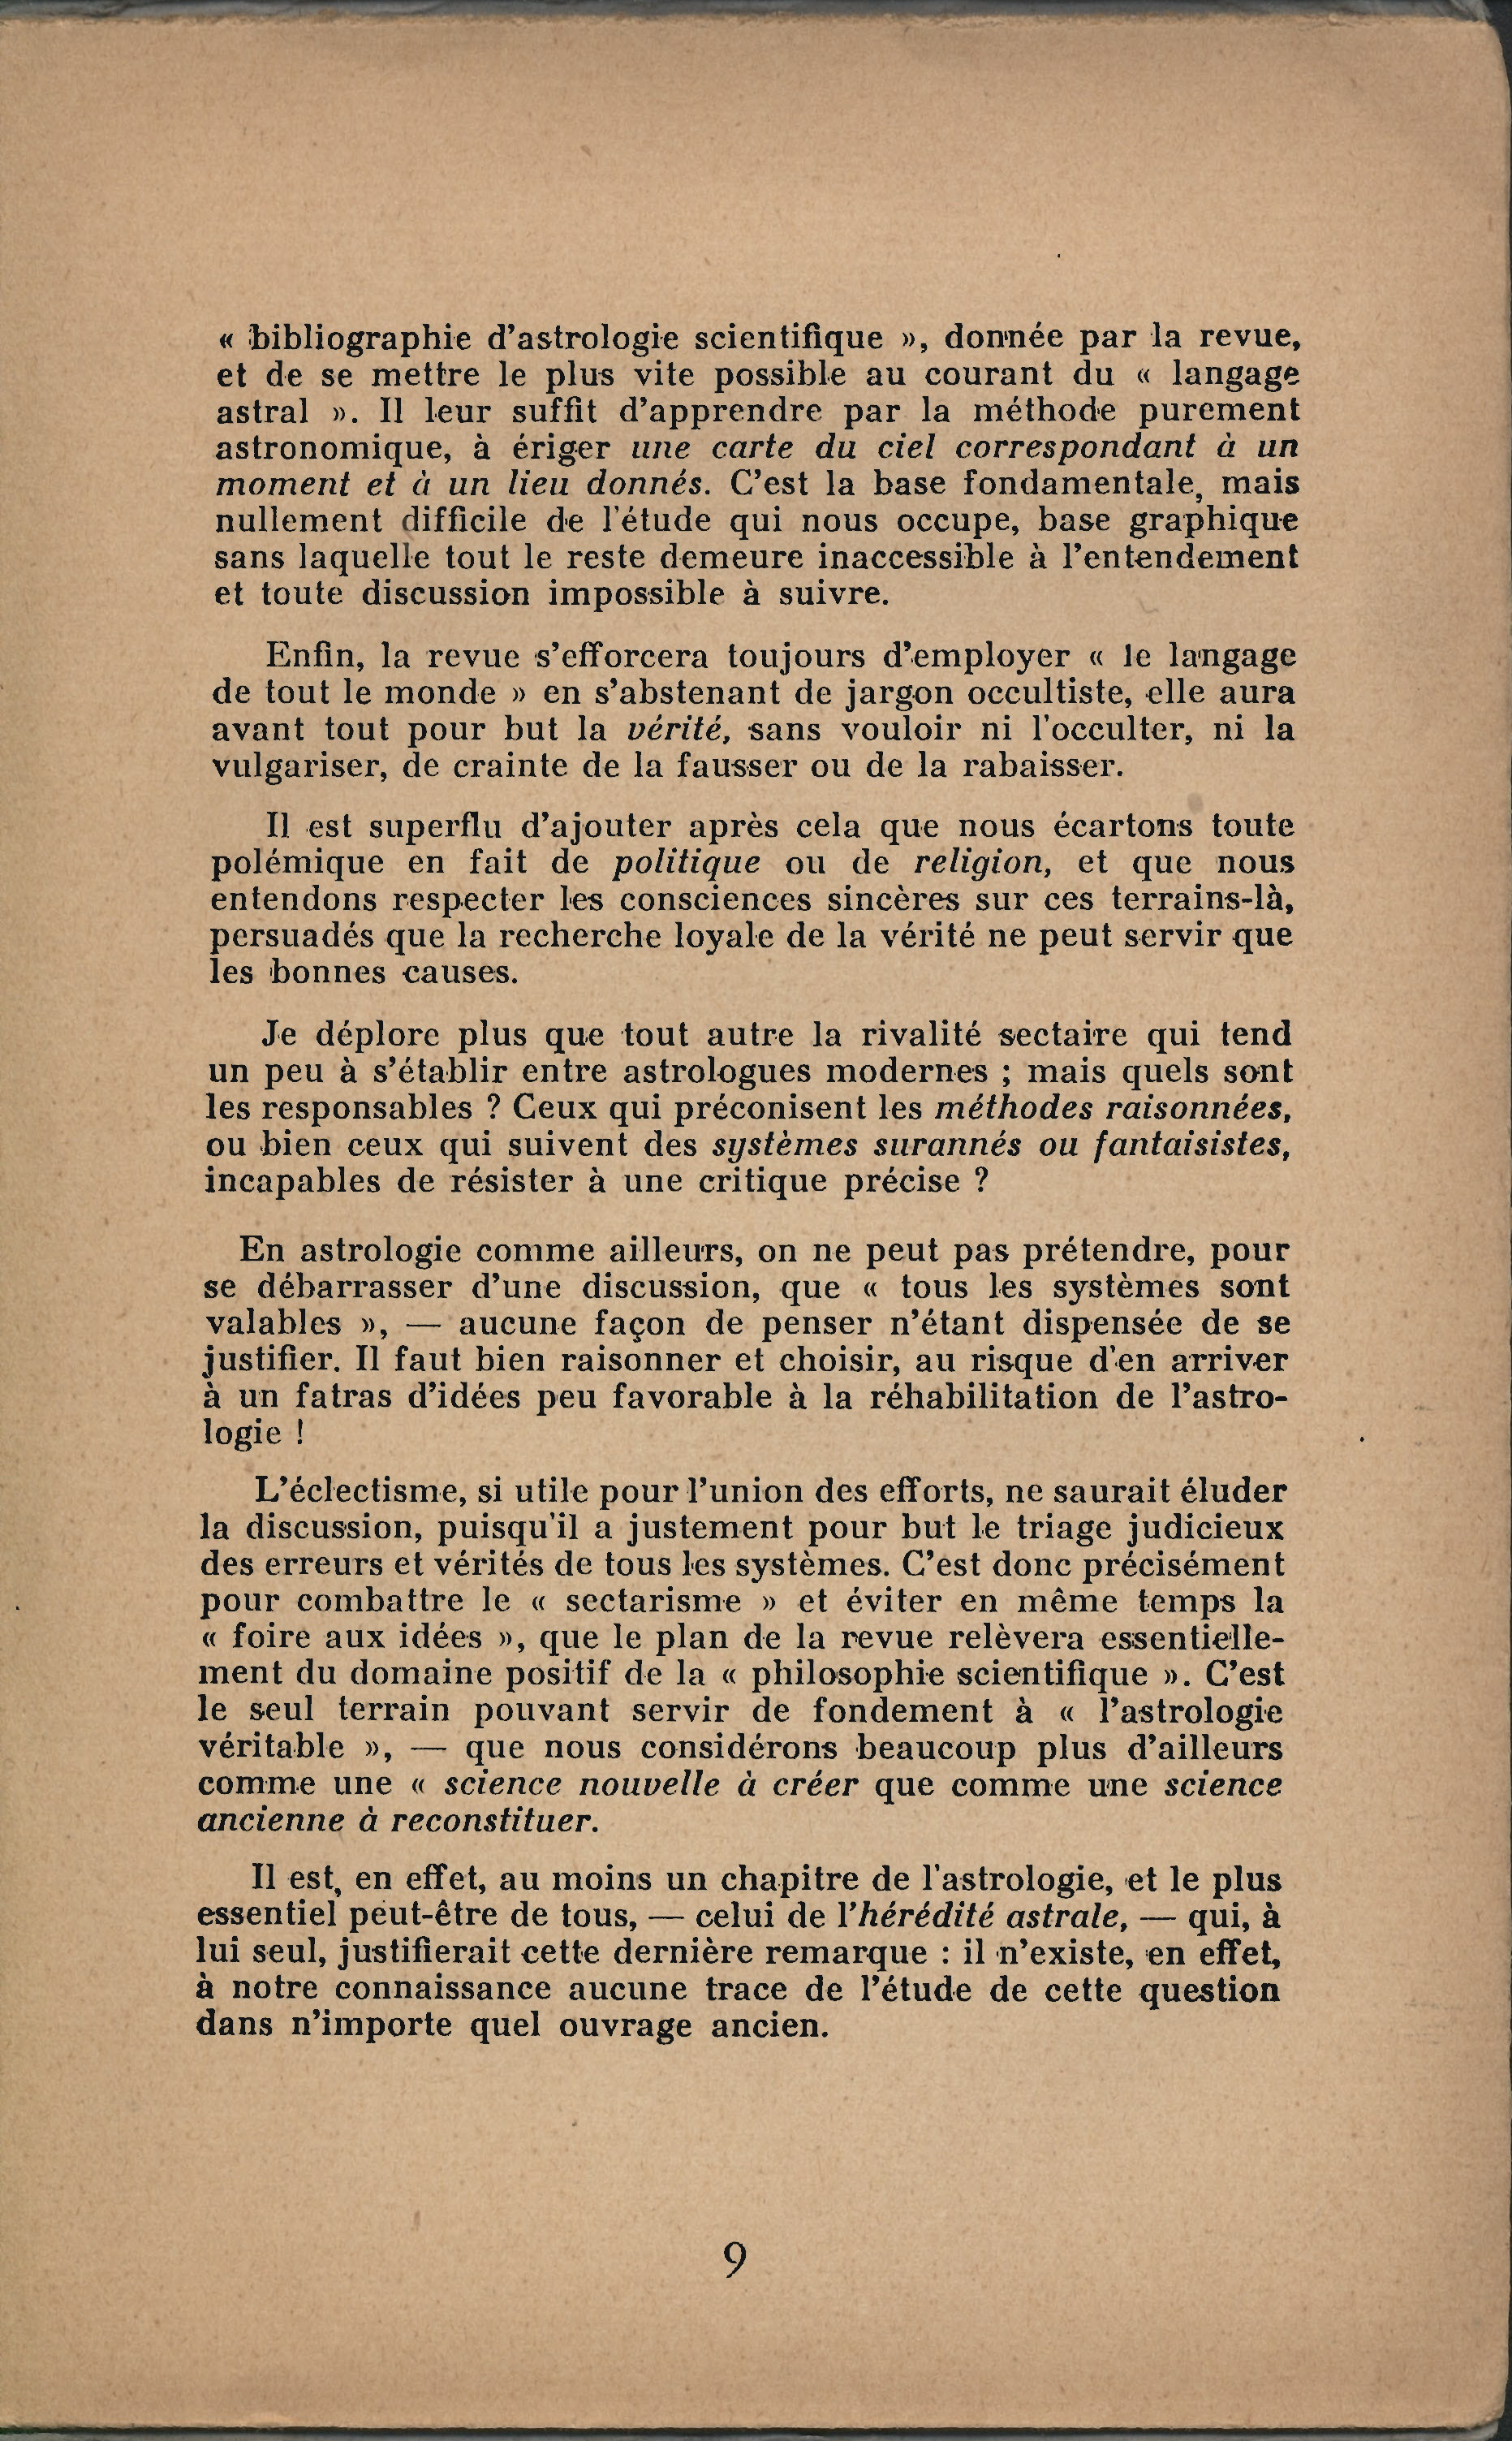 French firsts_Page_029